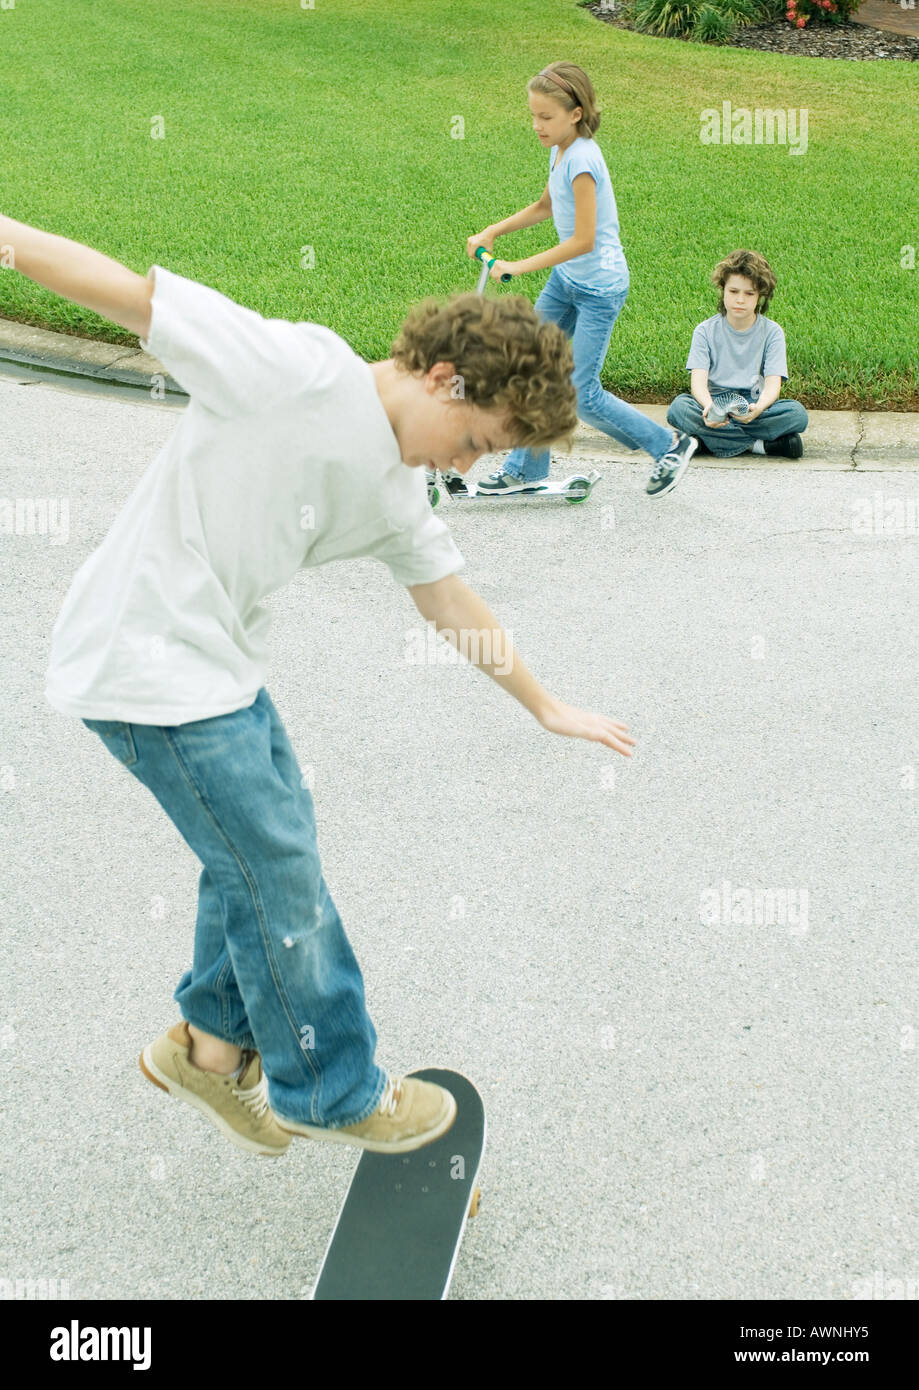 Suburban children playing in street - Stock Image